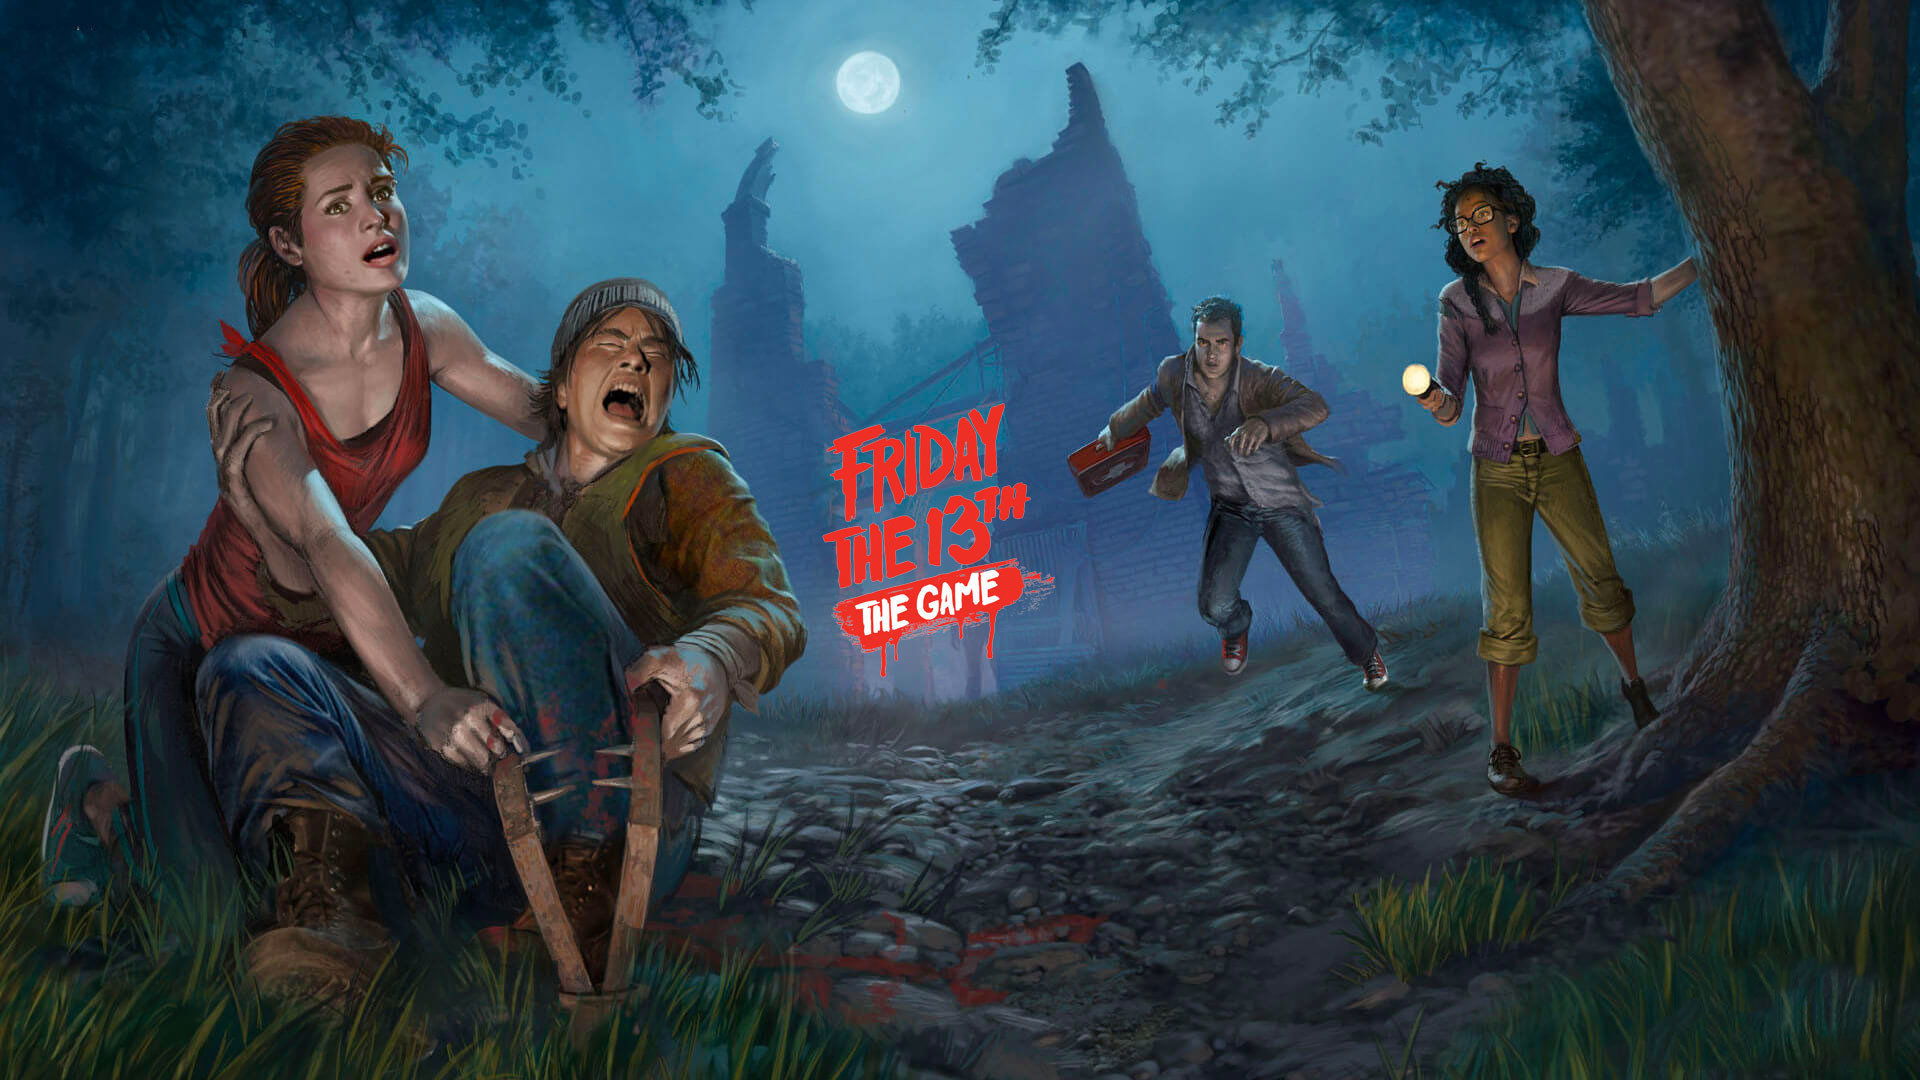 Res: 1920x1080, Friday the 13th: The Game HD Wallpapers 7 - 1920 X 1080